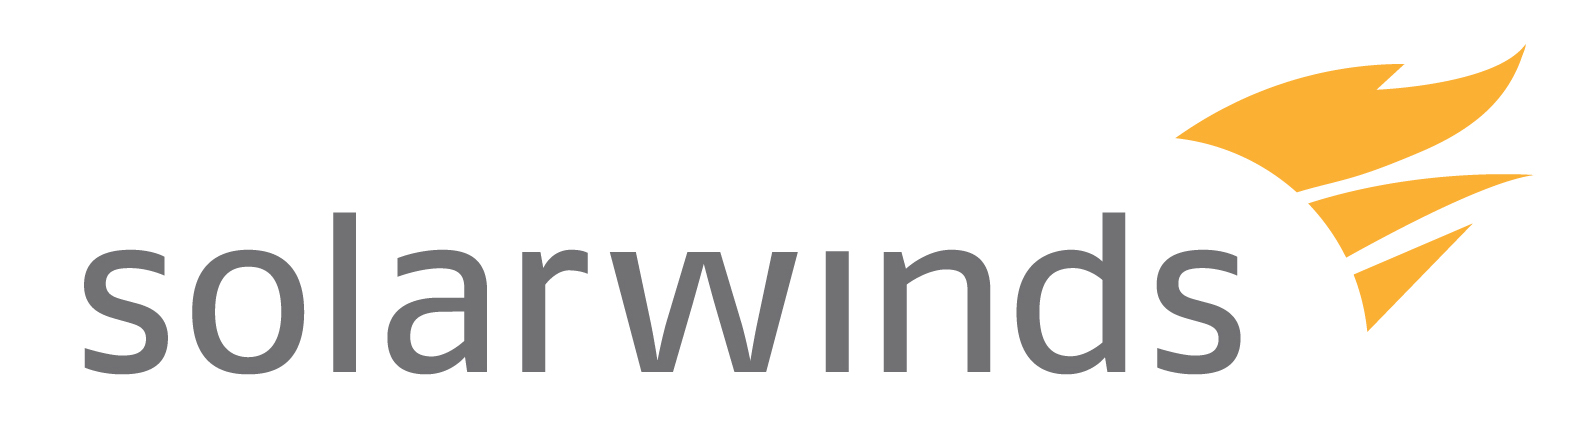 Thank you for taking the time to complete this survey by SolarWinds. Your feedback is important to us in how we can better improve our products.<br><br>This survey should only take about 5-8 minutes of your time. By filling out the survey you will be awarded 500 Thwack Points. <br><br>Any questions marked with an asterisk (*) require an answer in order to progress through the survey.<br><br>If you have any questions about the survey, please contact us at cliton.godinho@solarwinds.com